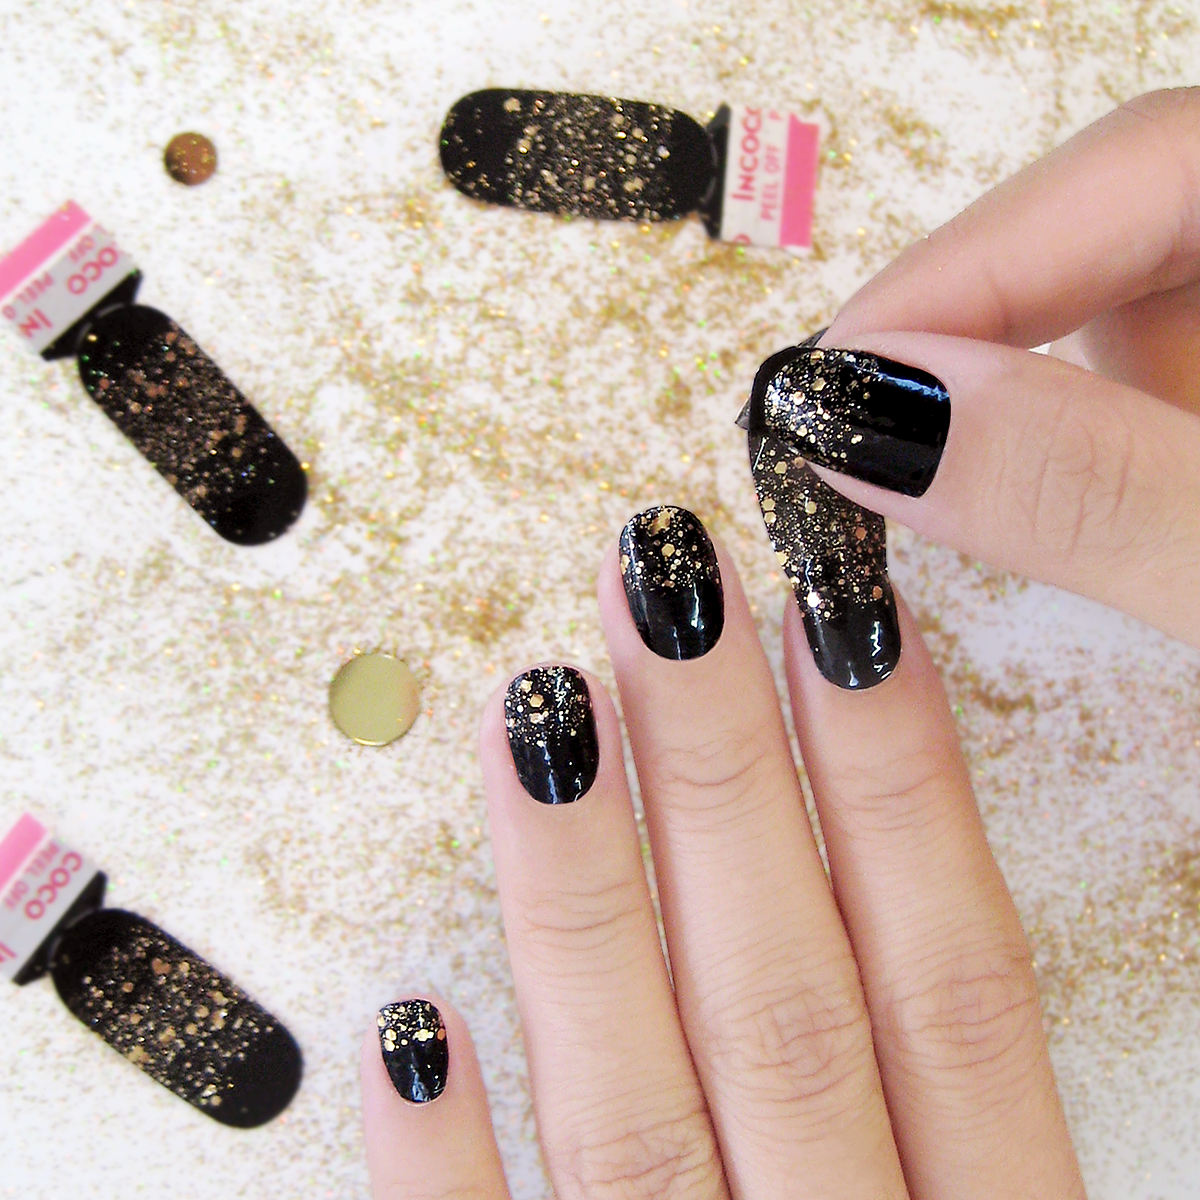 We ❤ Ulta! So thrilled that our Incoco nail polish appliqués, are ...